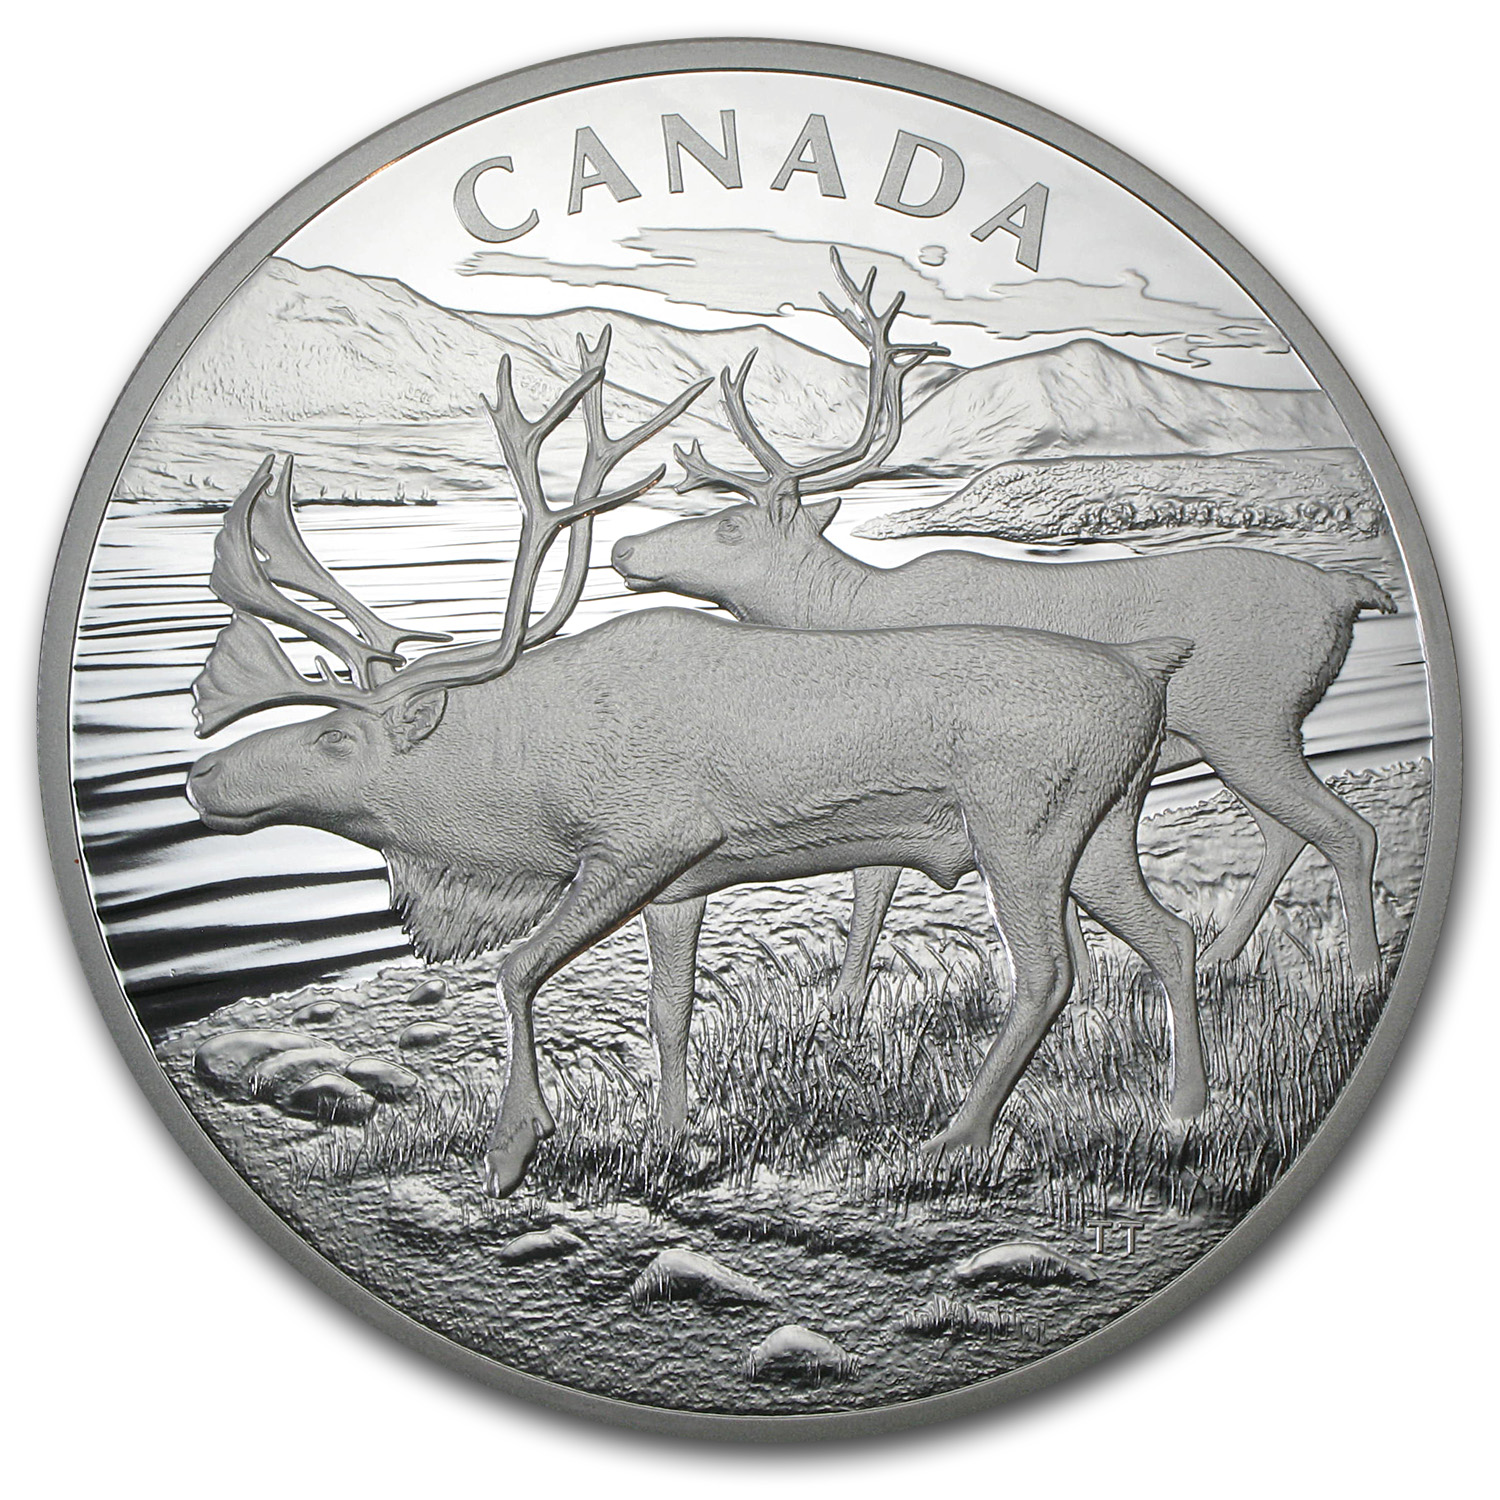 2013 Kilo Silver Canadian $250 - The Caribou